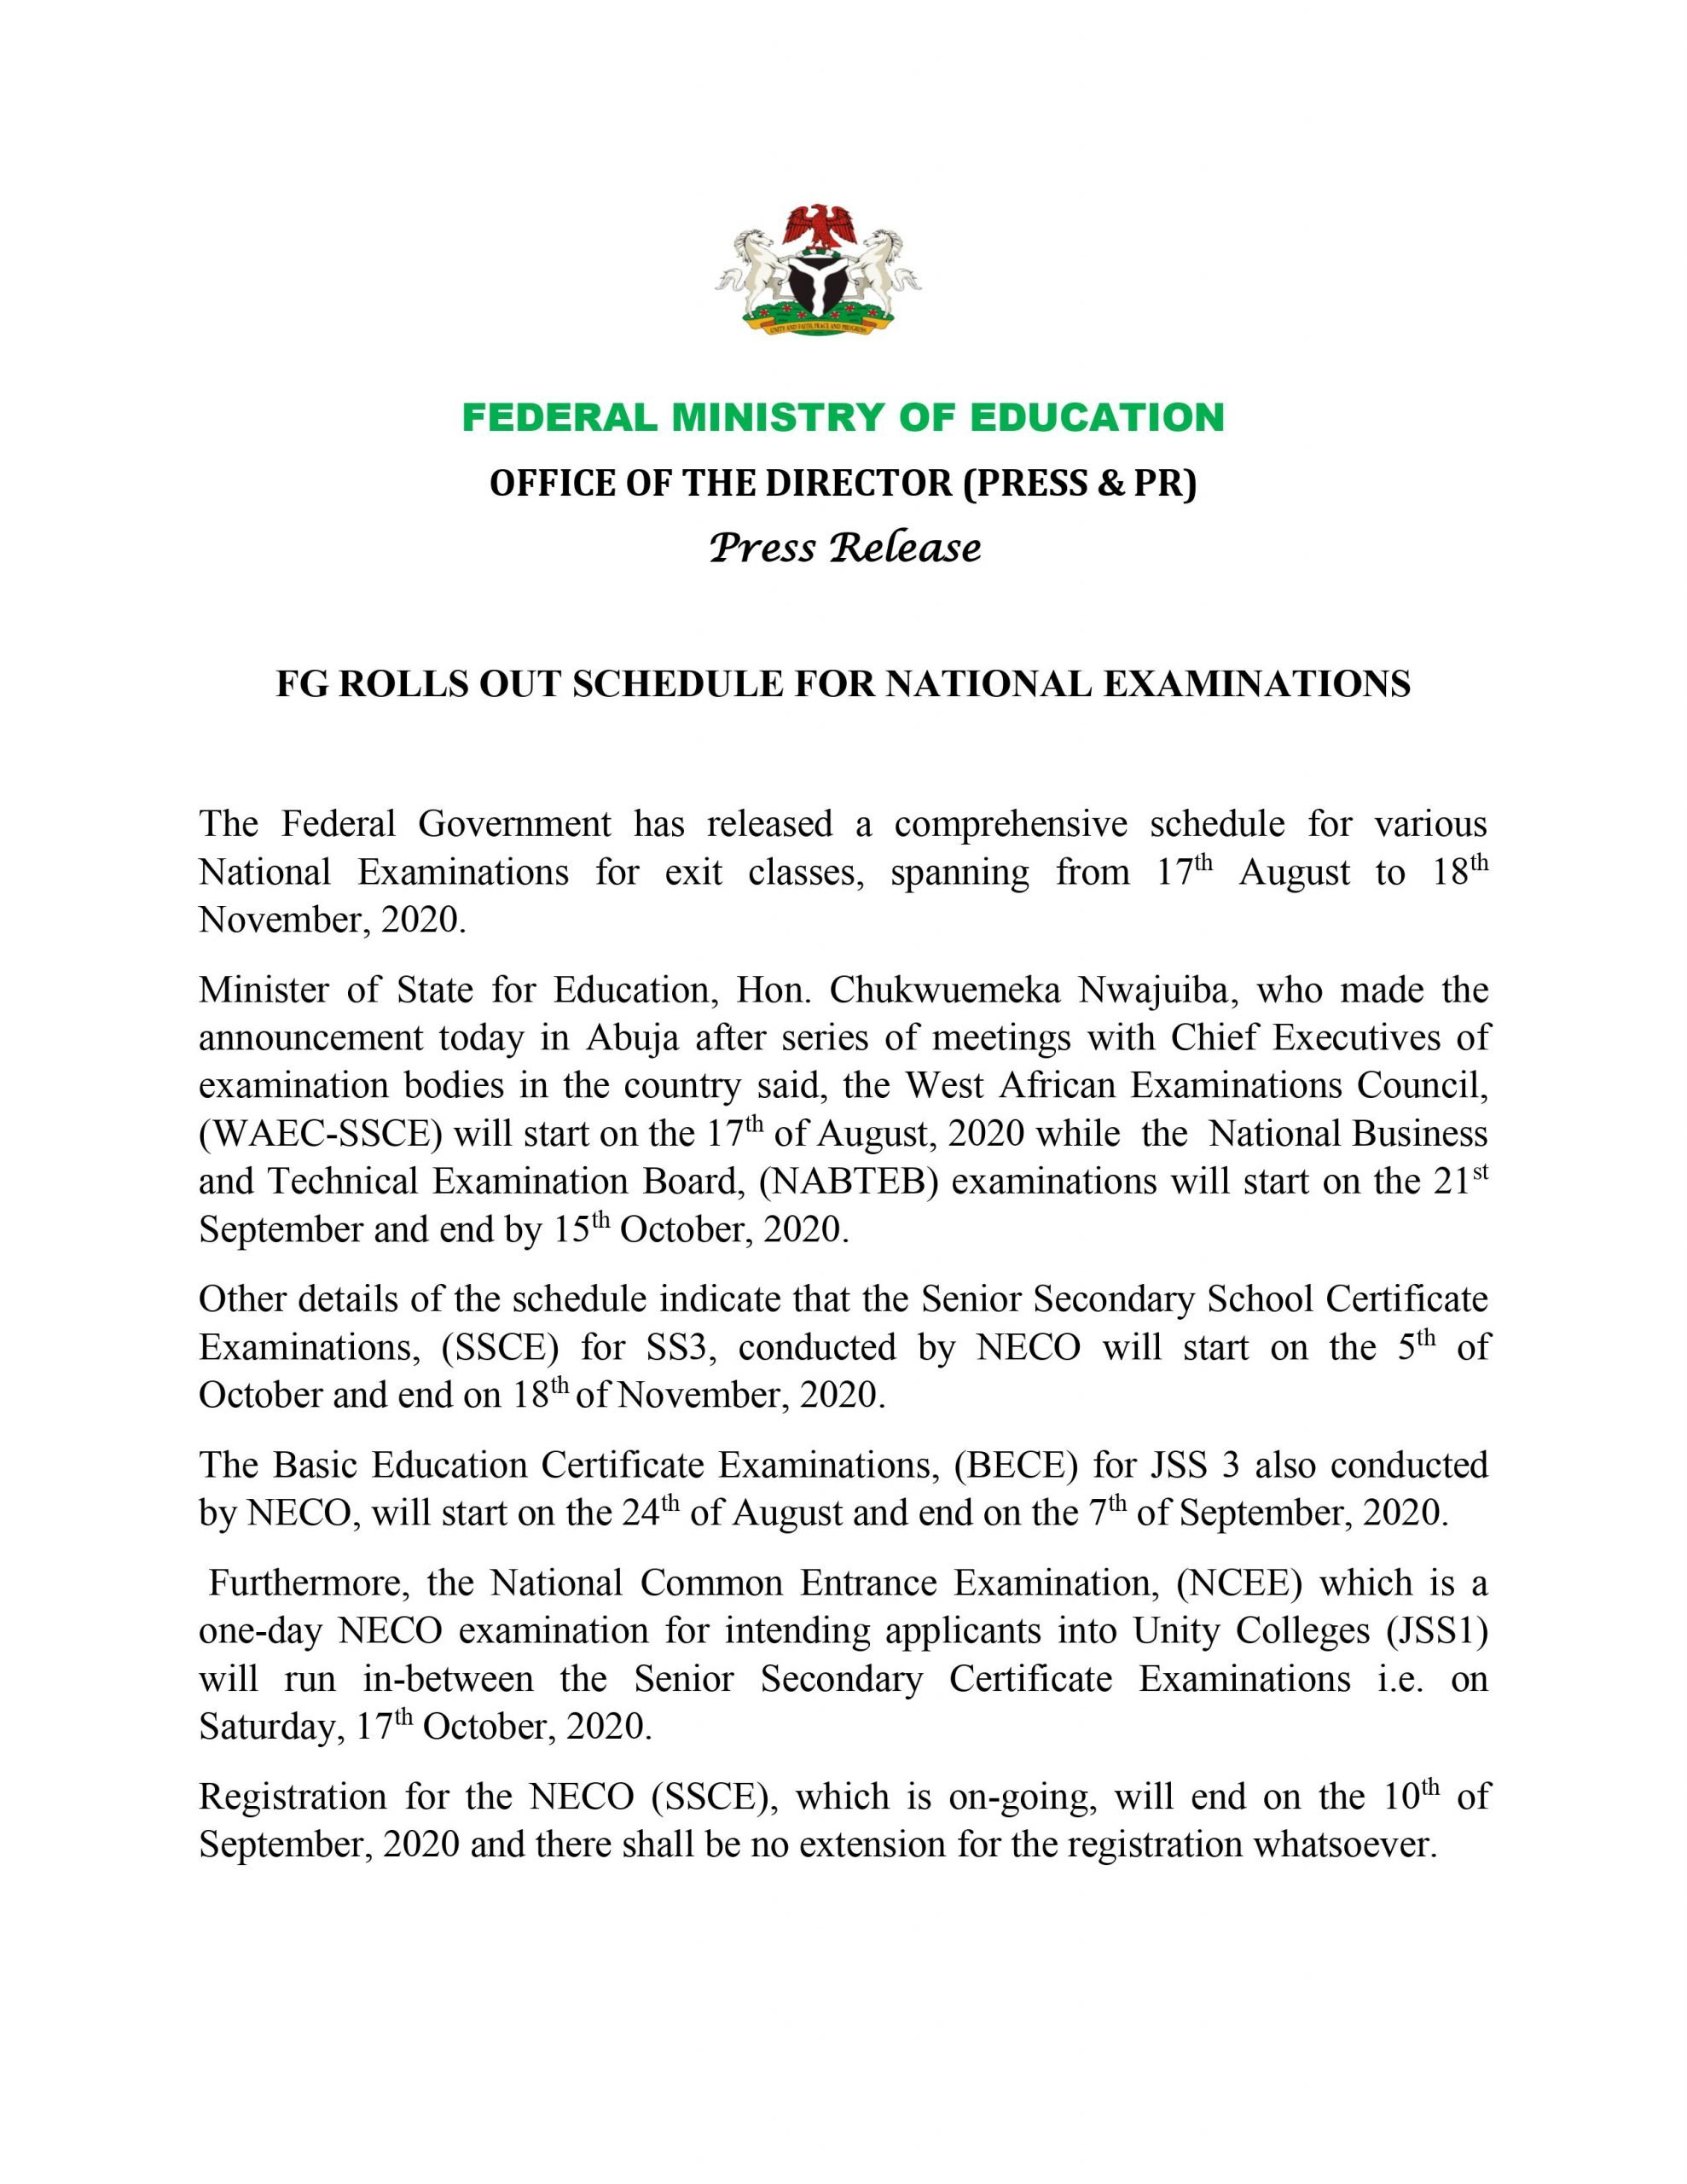 FG Announces Commencement Dates for NECO, NABTEB, Other Examinations